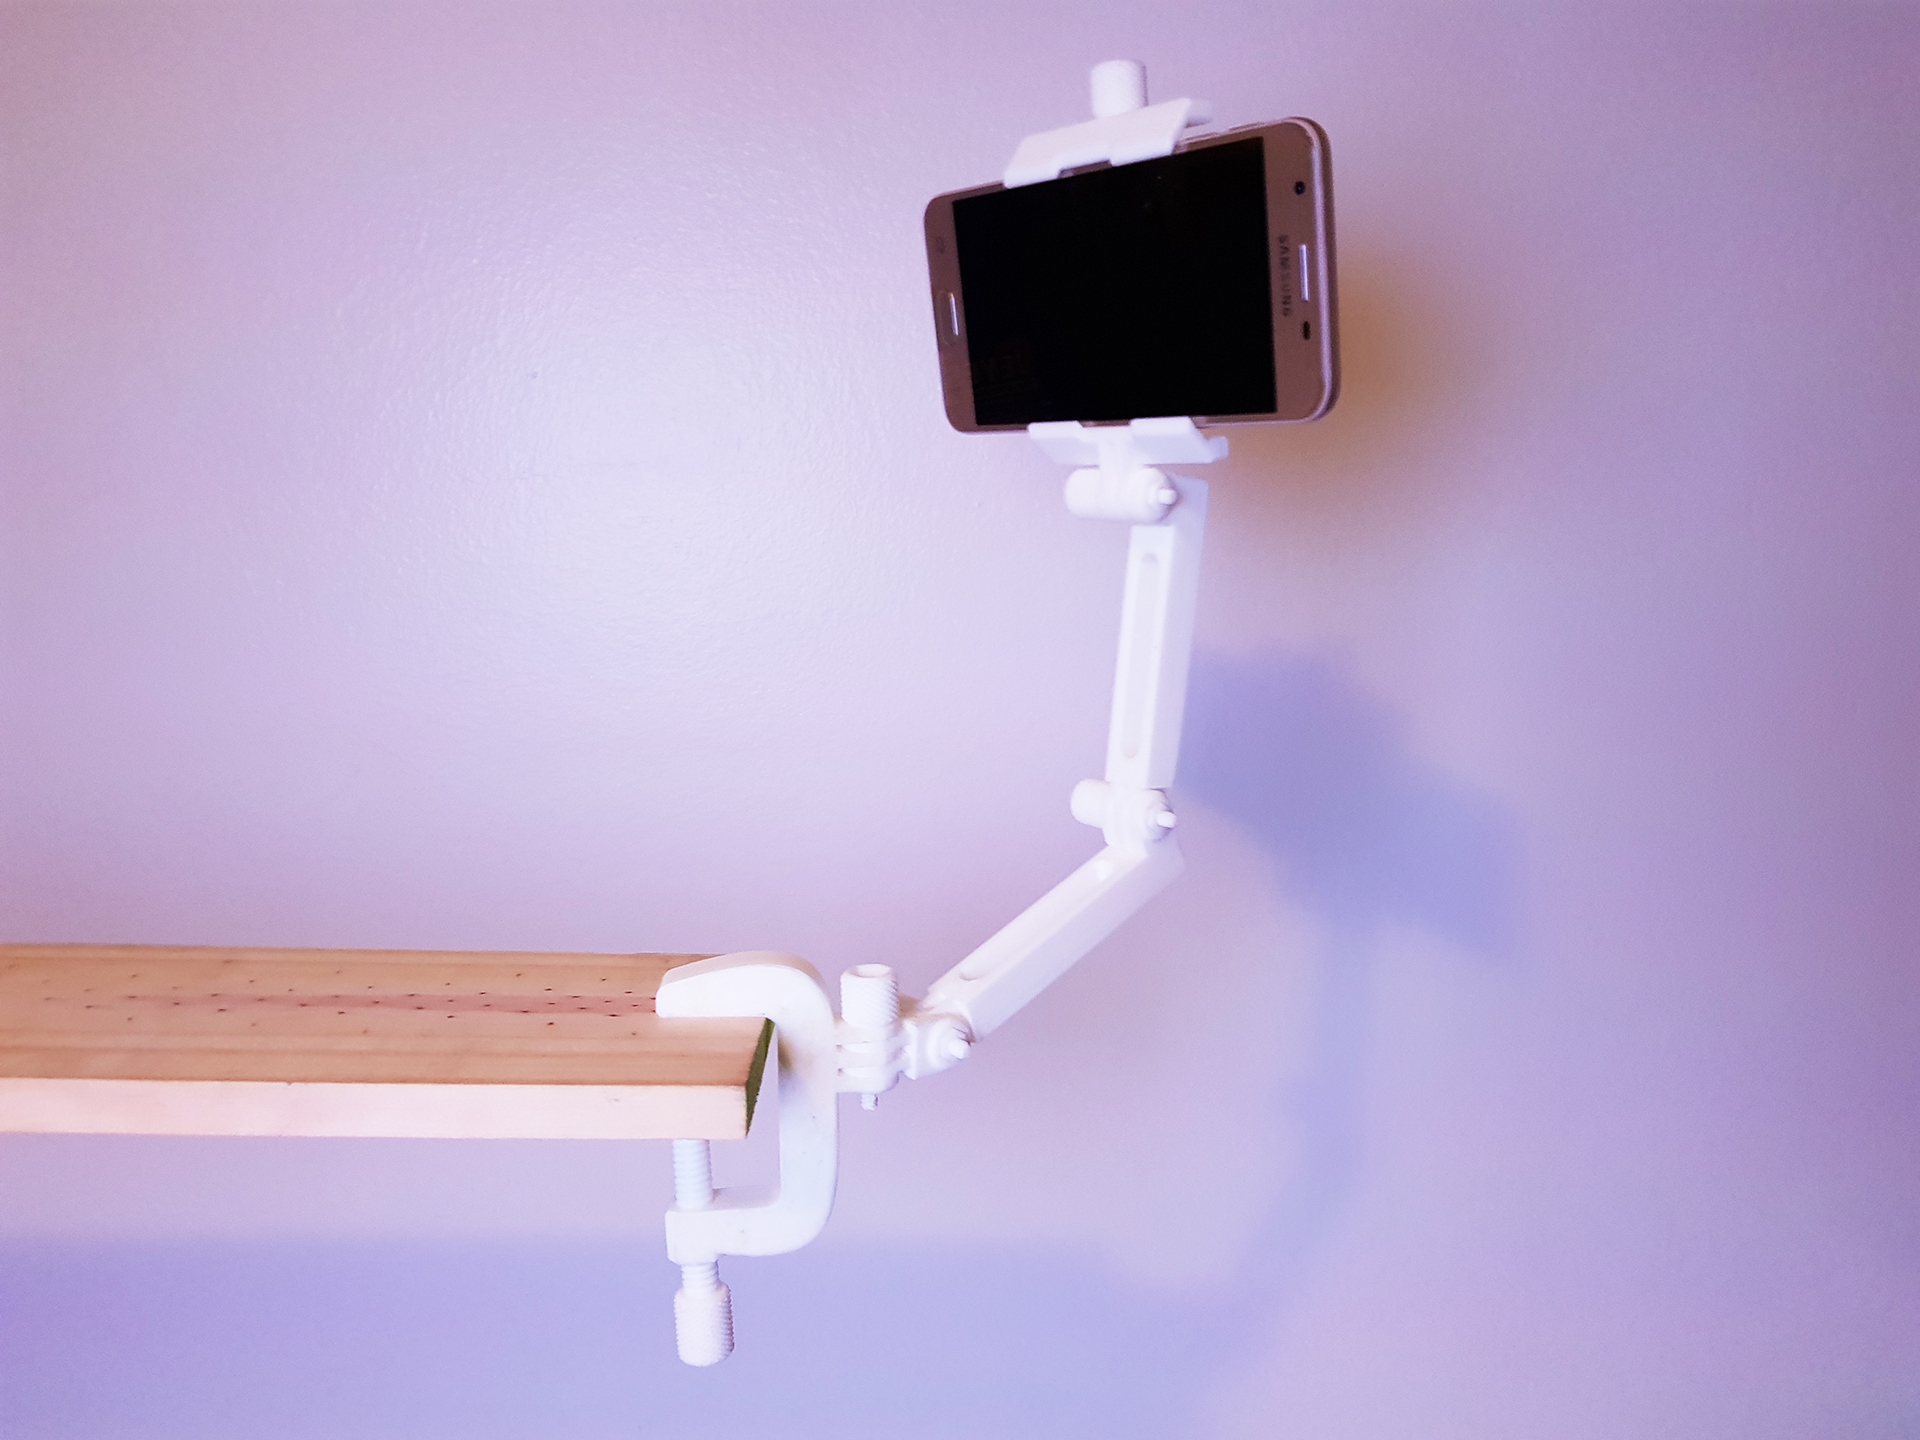 Best Phone Mount! 3D Printed using Creality CR-10 | Guinea Pixel